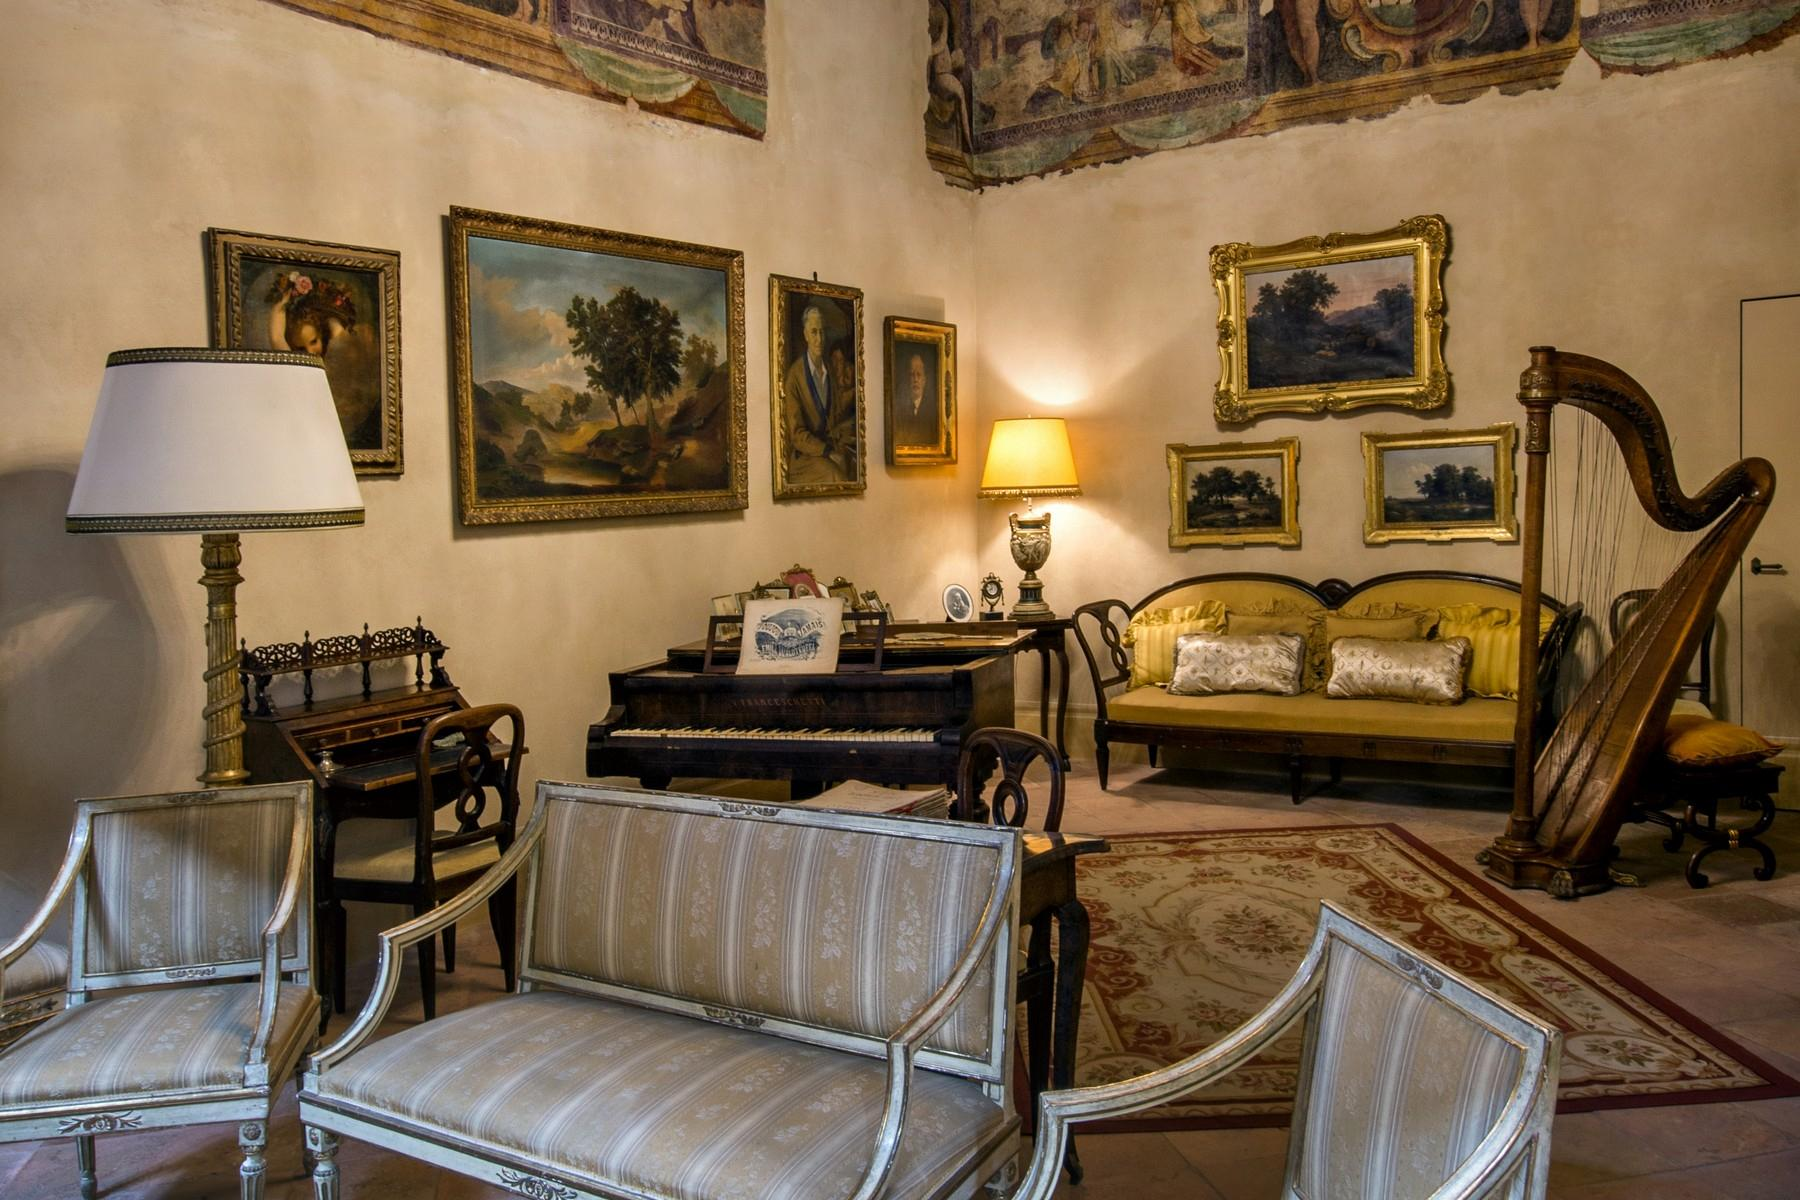 Magnificent historic palace in the heart of Reggio Emilia - 12